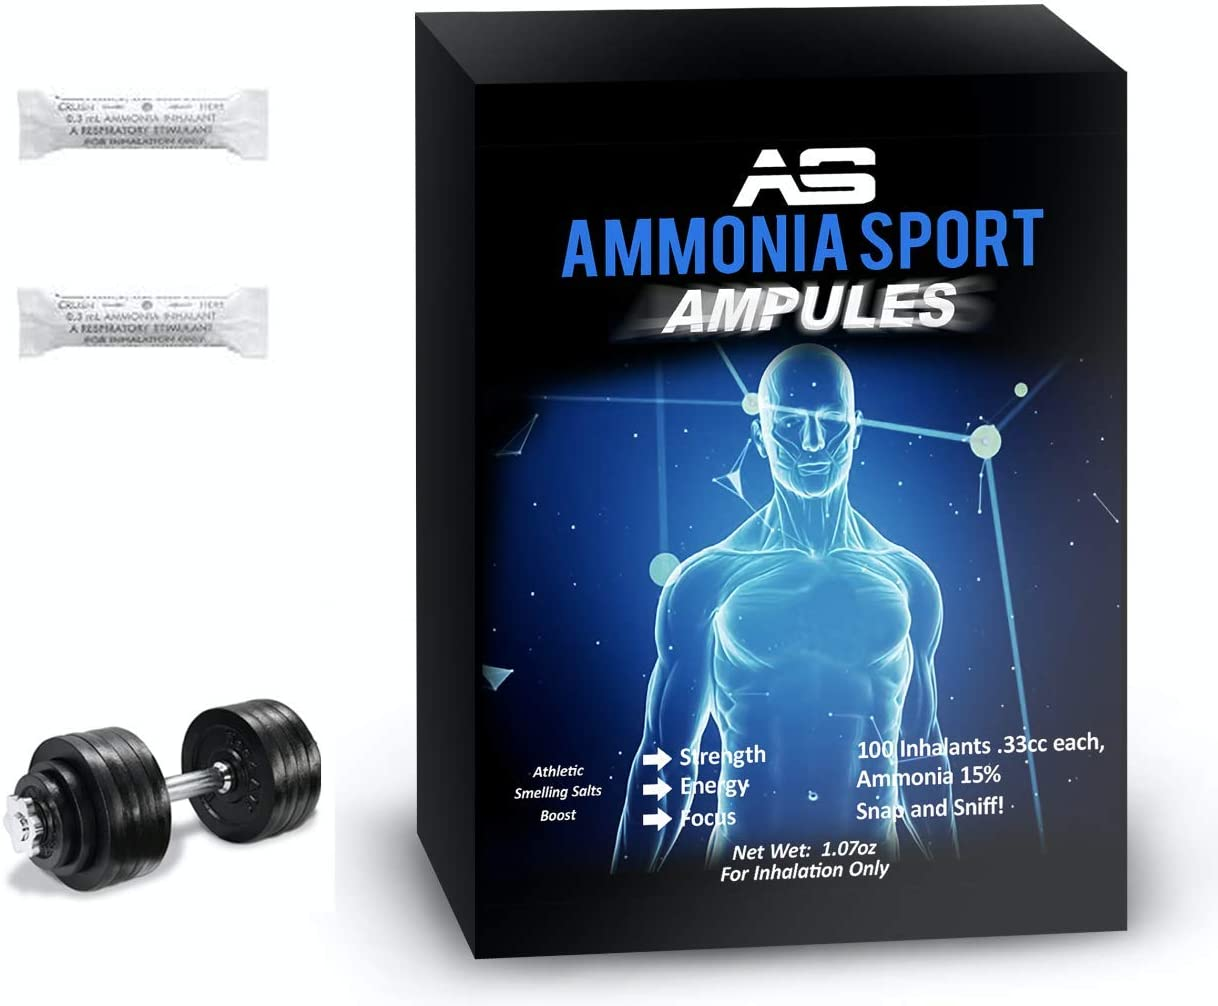 AmmoniaSport Athletic Smelling Salts – Ampules 100 Ammonia Inhalant – Smelling Salts – Powerlifting Smelling Salts – Ammonia Alert – Salt Caps – Pre Workout Tablets – Jetlag Pills – Ammonia Alert